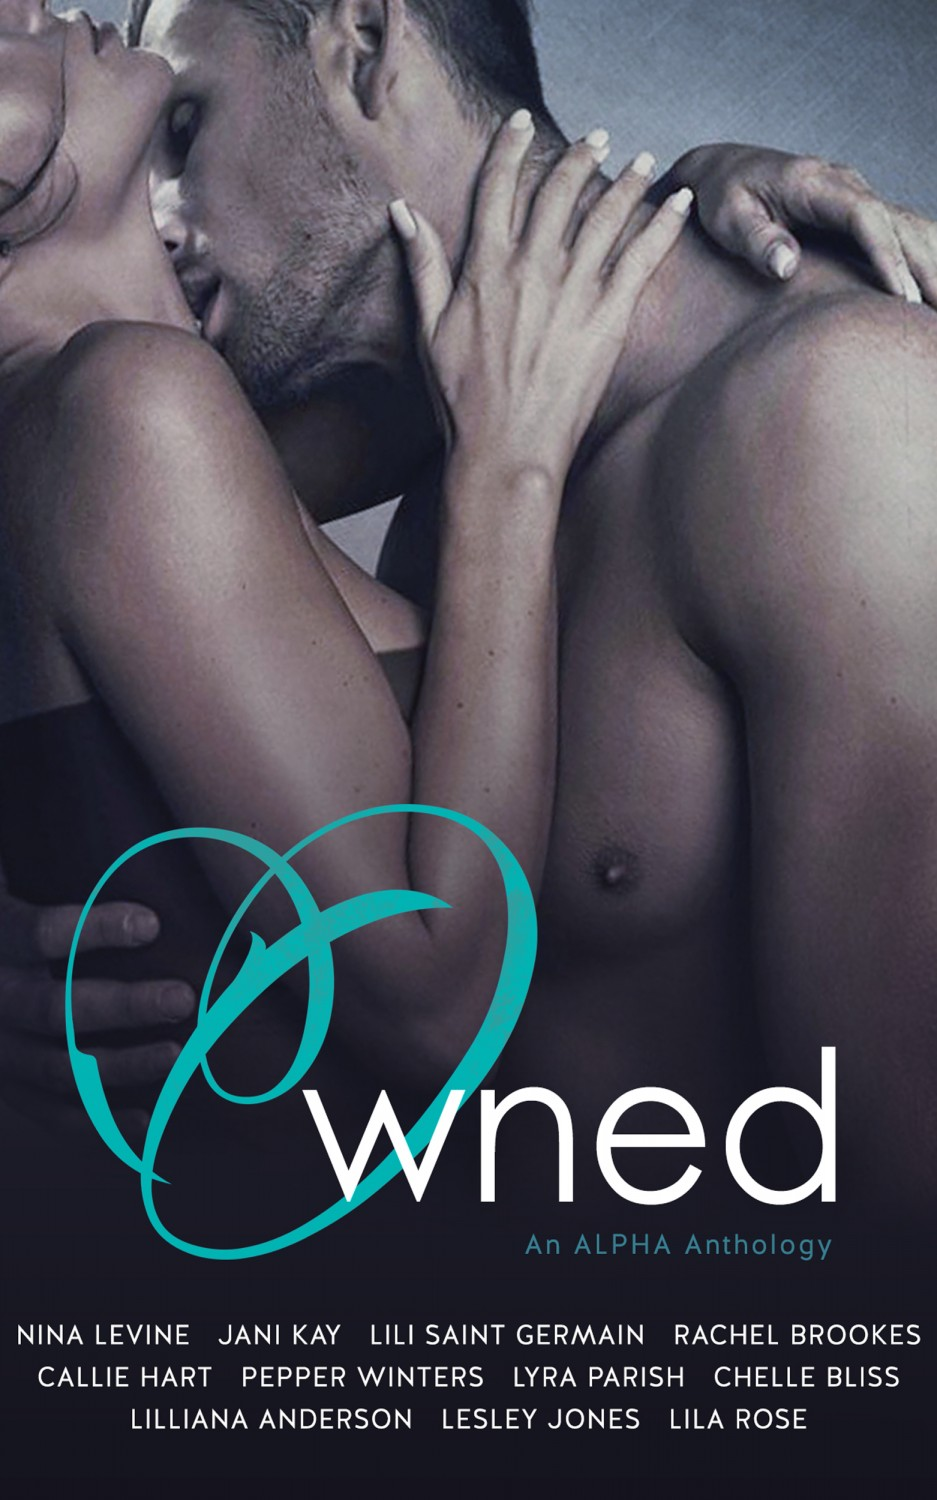 OWNED ANTHOLOGY KINDLE EBOOK COVER-2